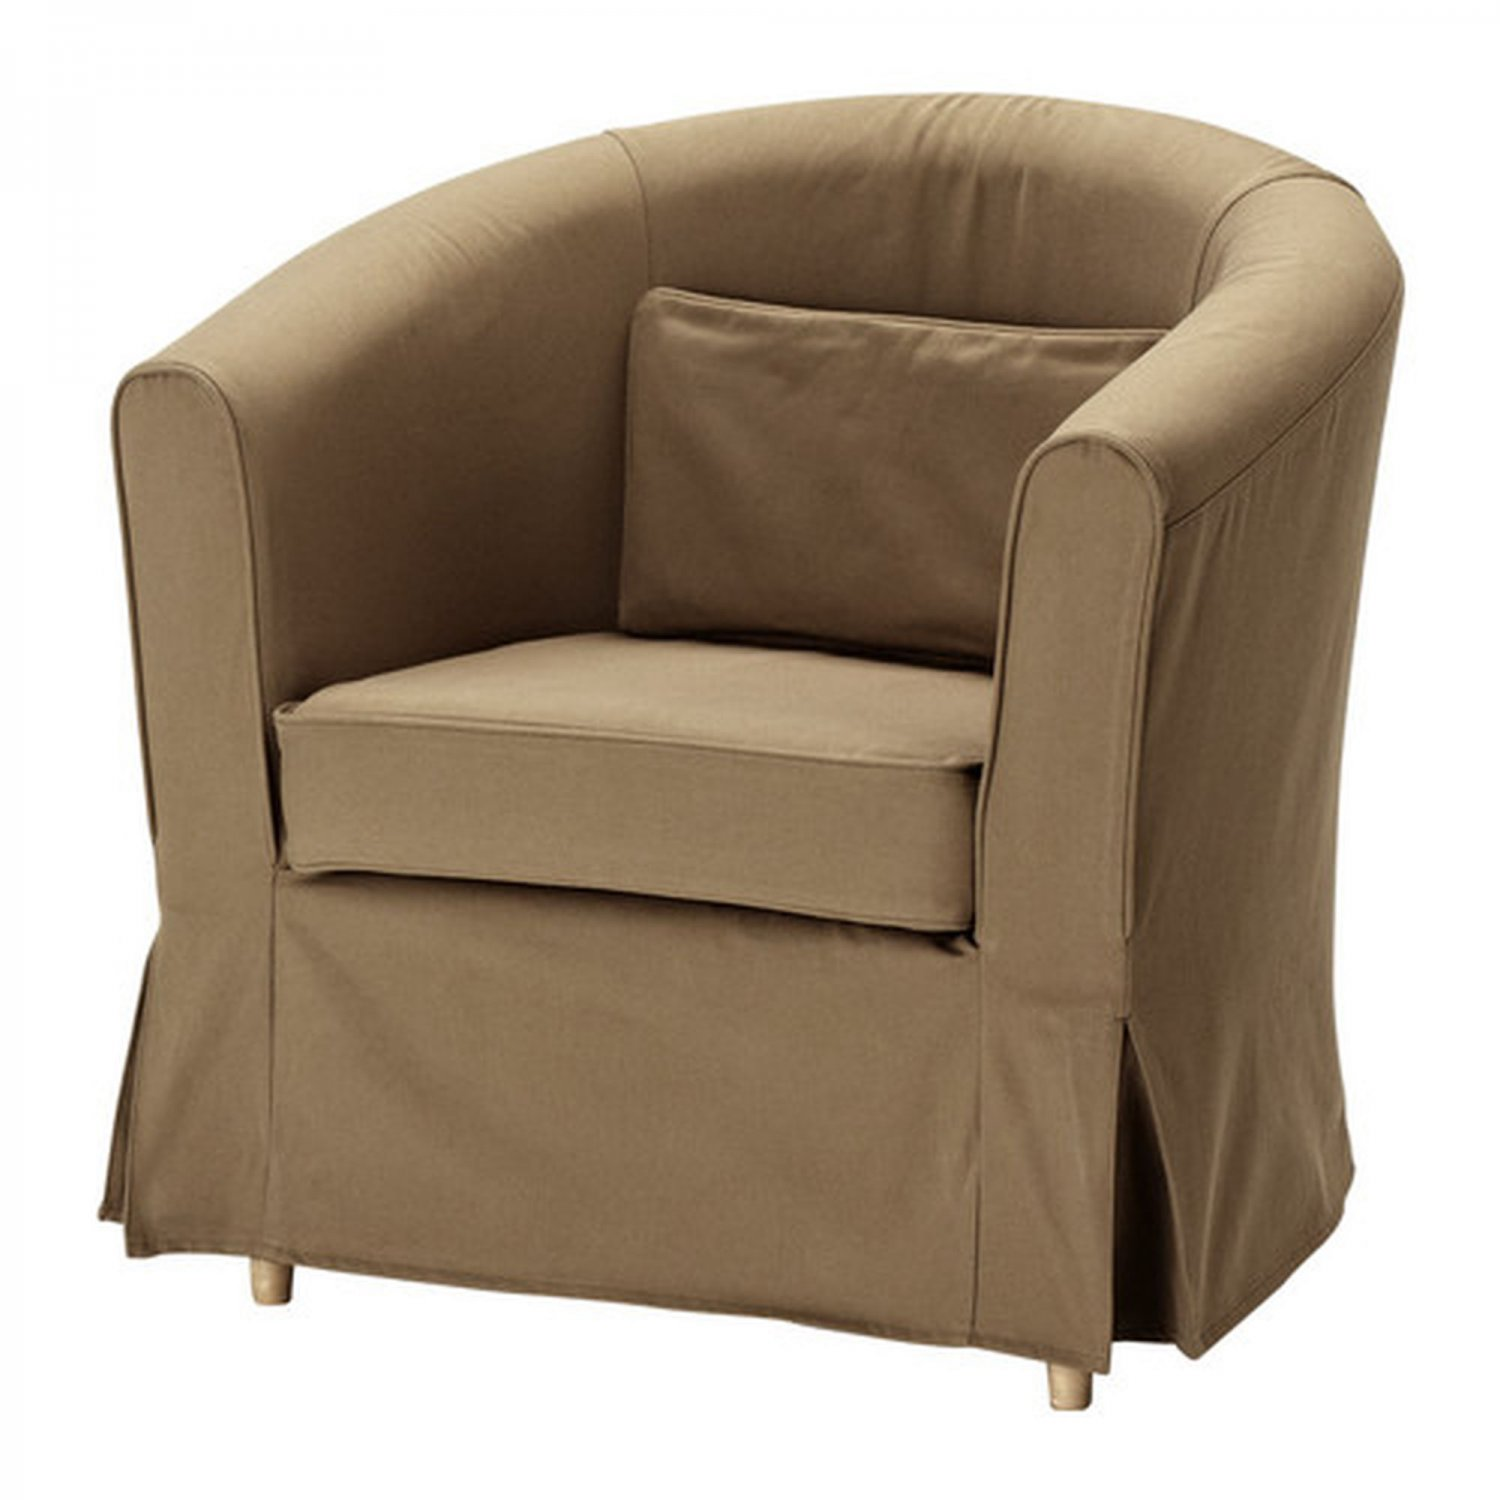 ikea ektorp tullsta armchair slipcover chair cover idemo light brown. Black Bedroom Furniture Sets. Home Design Ideas